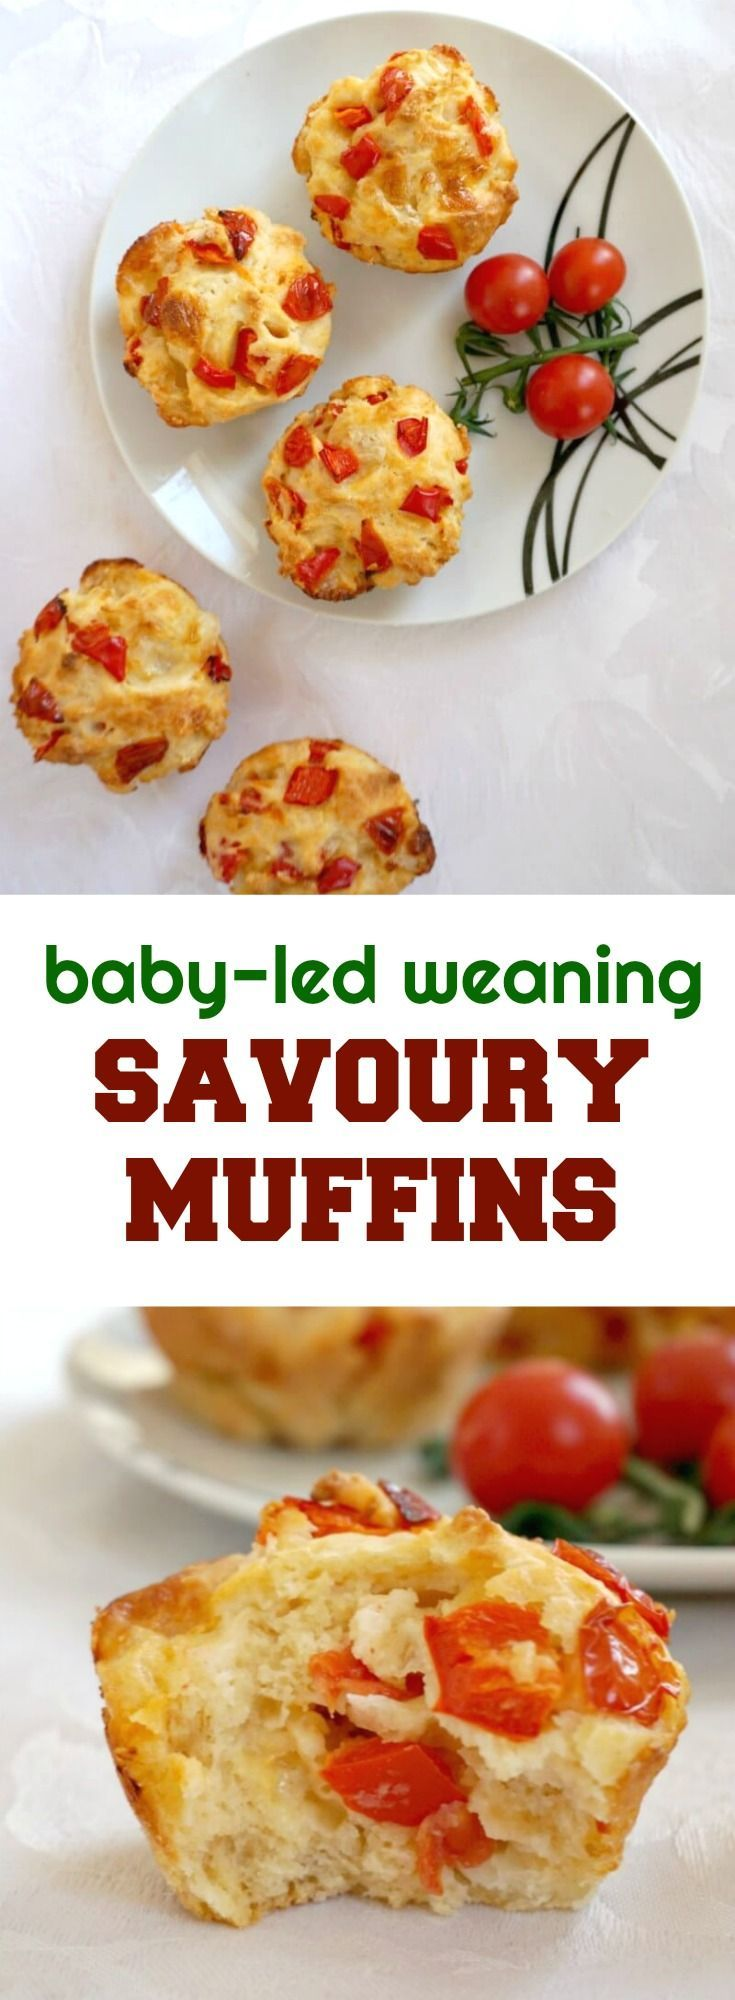 Savoury Muffins With Tomatoes Red Peppers And Mozzarella A Delicious And Healthy Finger Food Idea For B Baby Food Recipes Healthy Finger Foods Savory Muffins